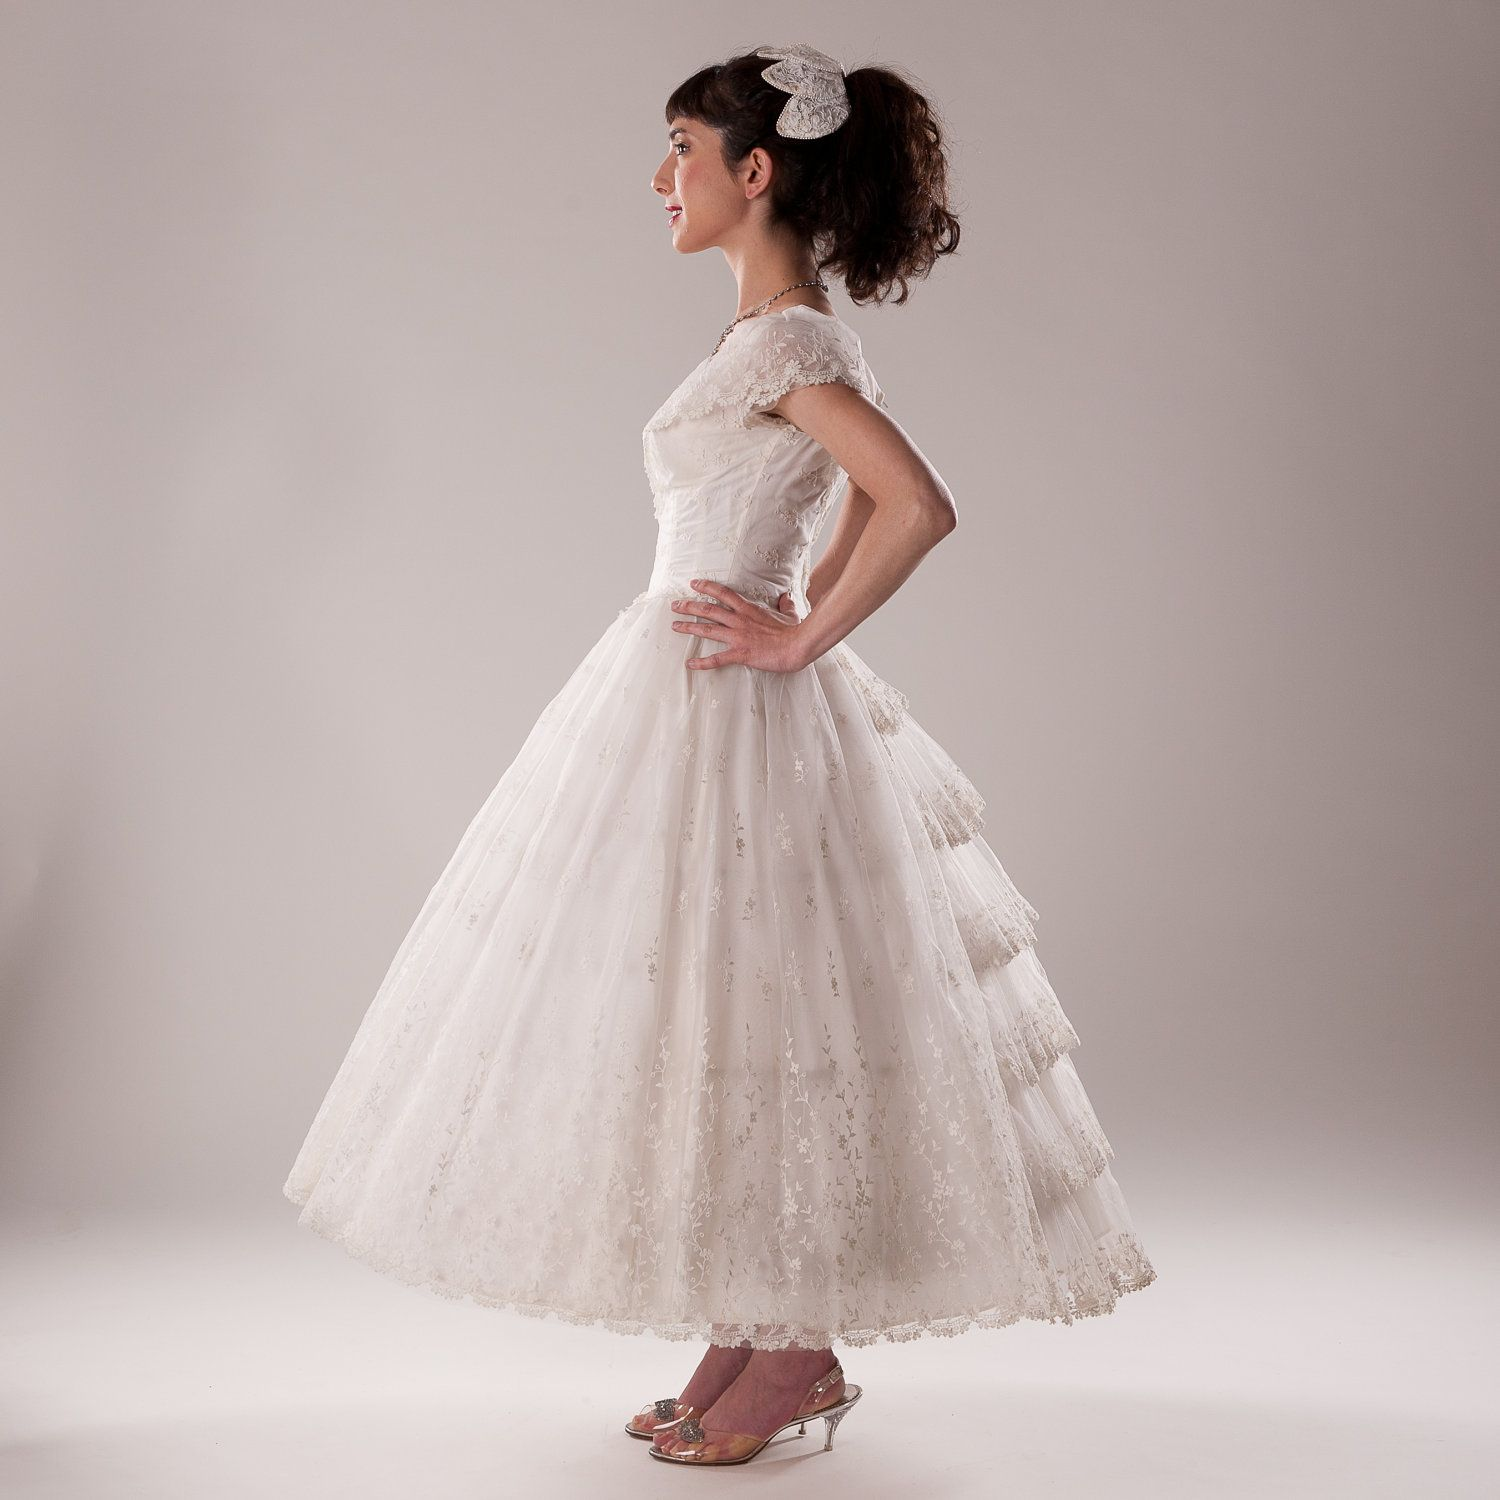 Pretty side view. Vintage 1950s Tulle Wedding Dress Gown Corset Hoop ...